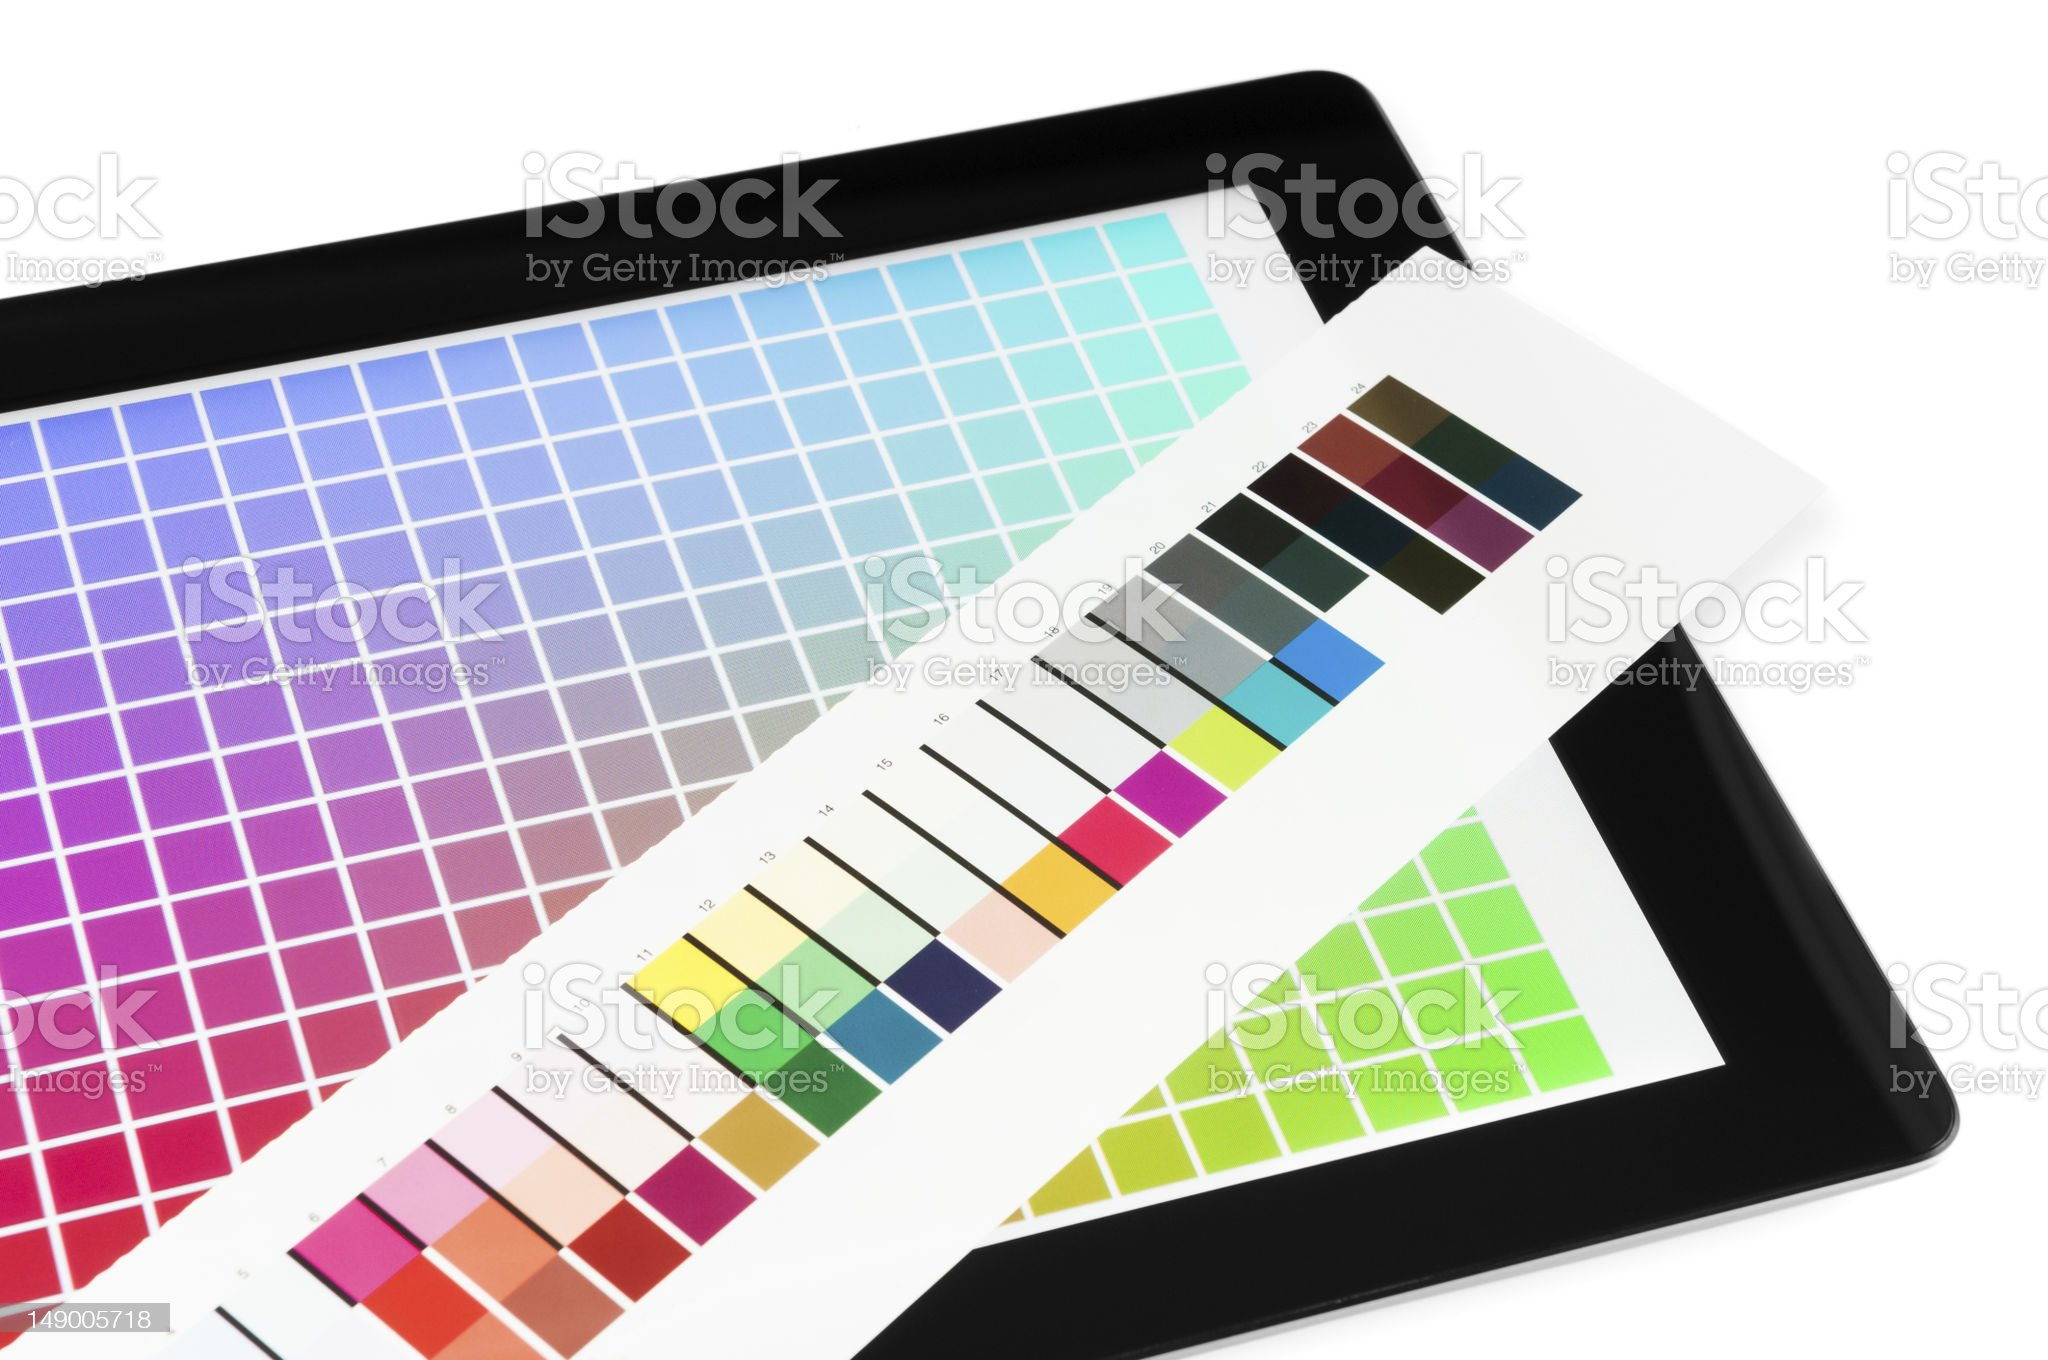 Proofing mobile pc screen royalty-free stock photo